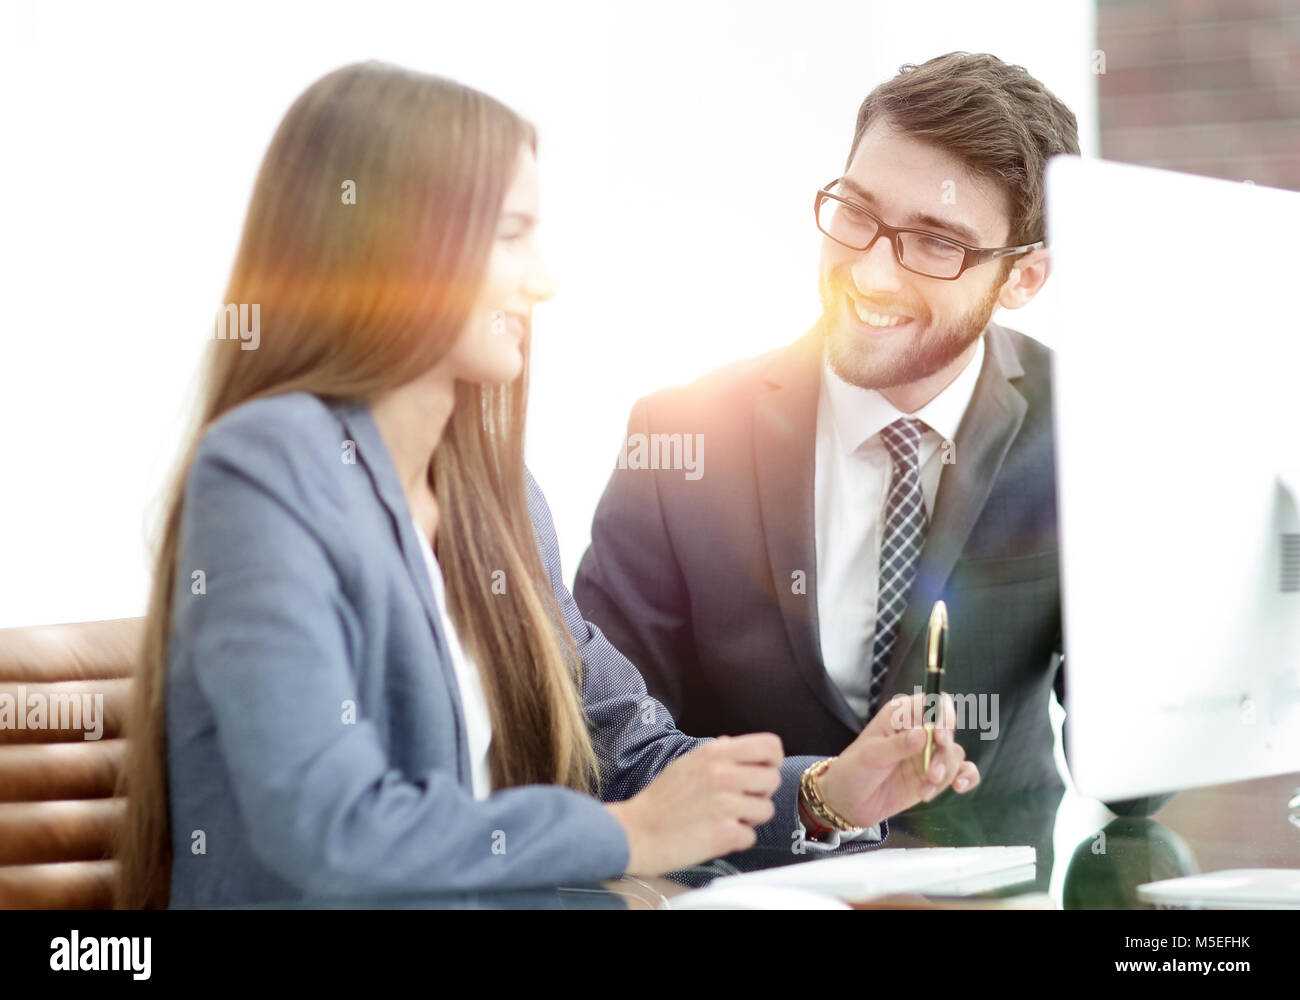 colleagues discussing information on a computer Stock Photo